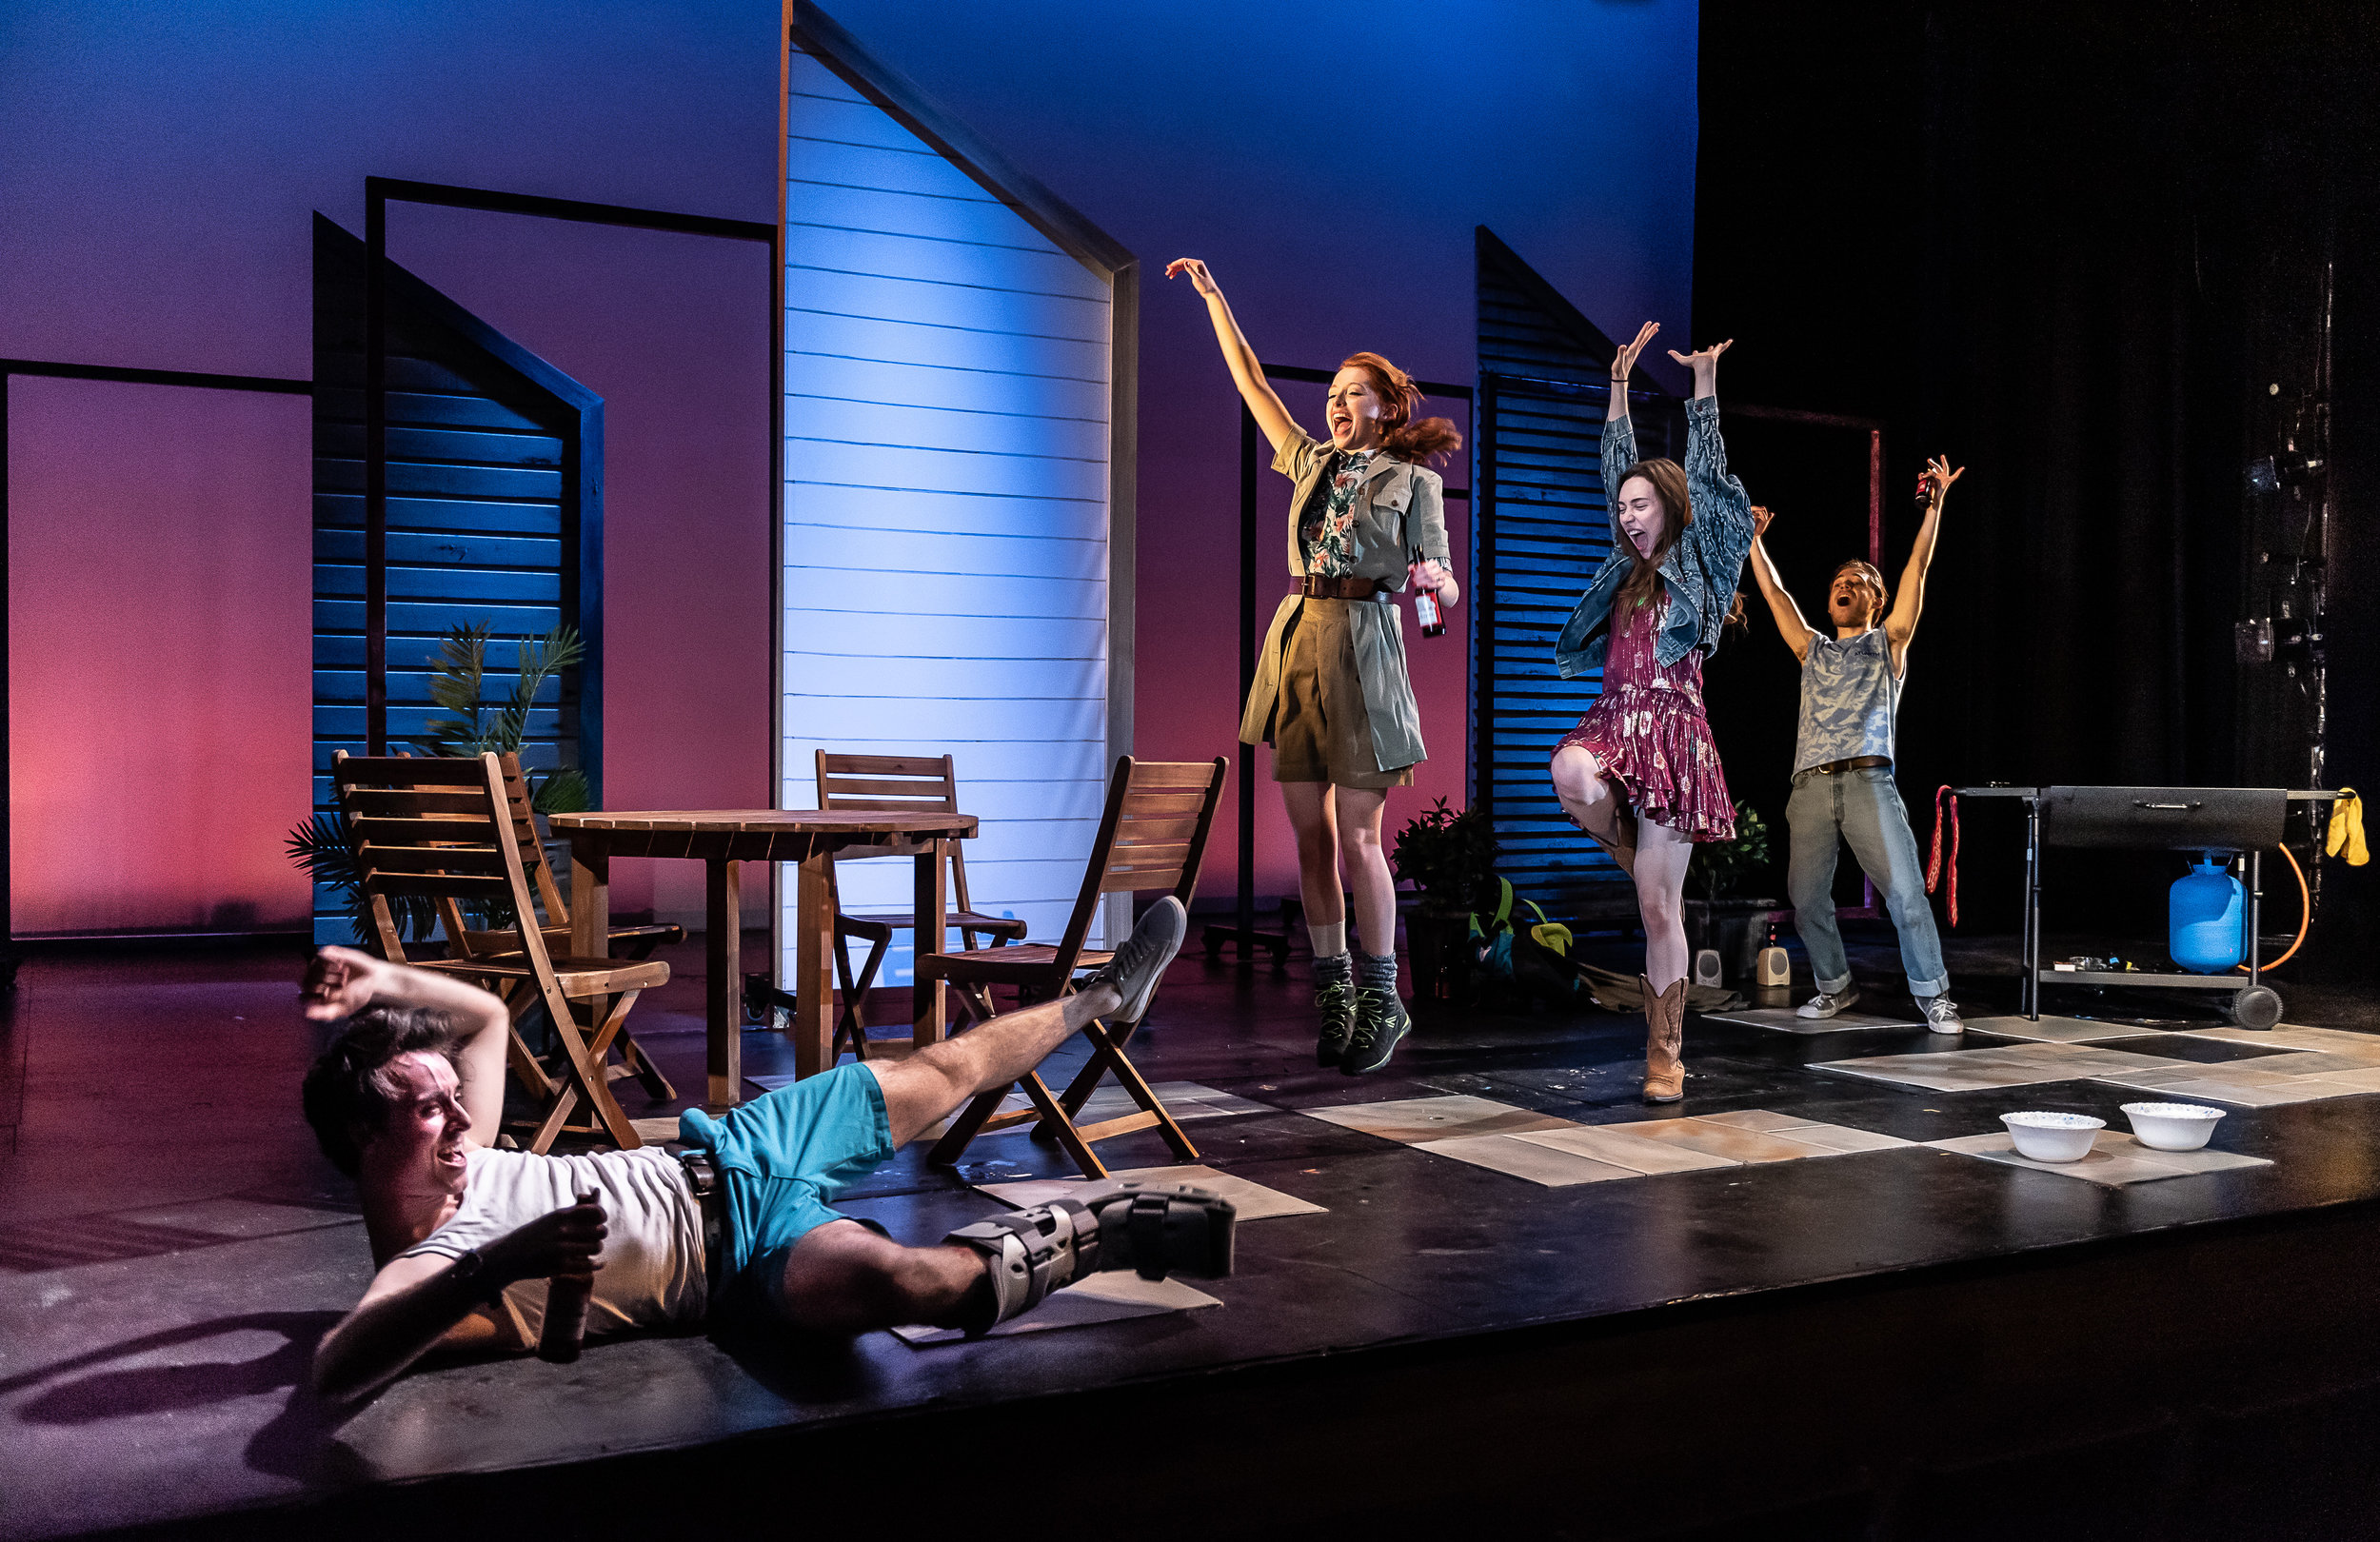 Oli Higginson as Ben, Poppy Gilbert as Mary, Laurel Waghorn as Sharon and Nick Apostolina as Kenny  © Clive Barda